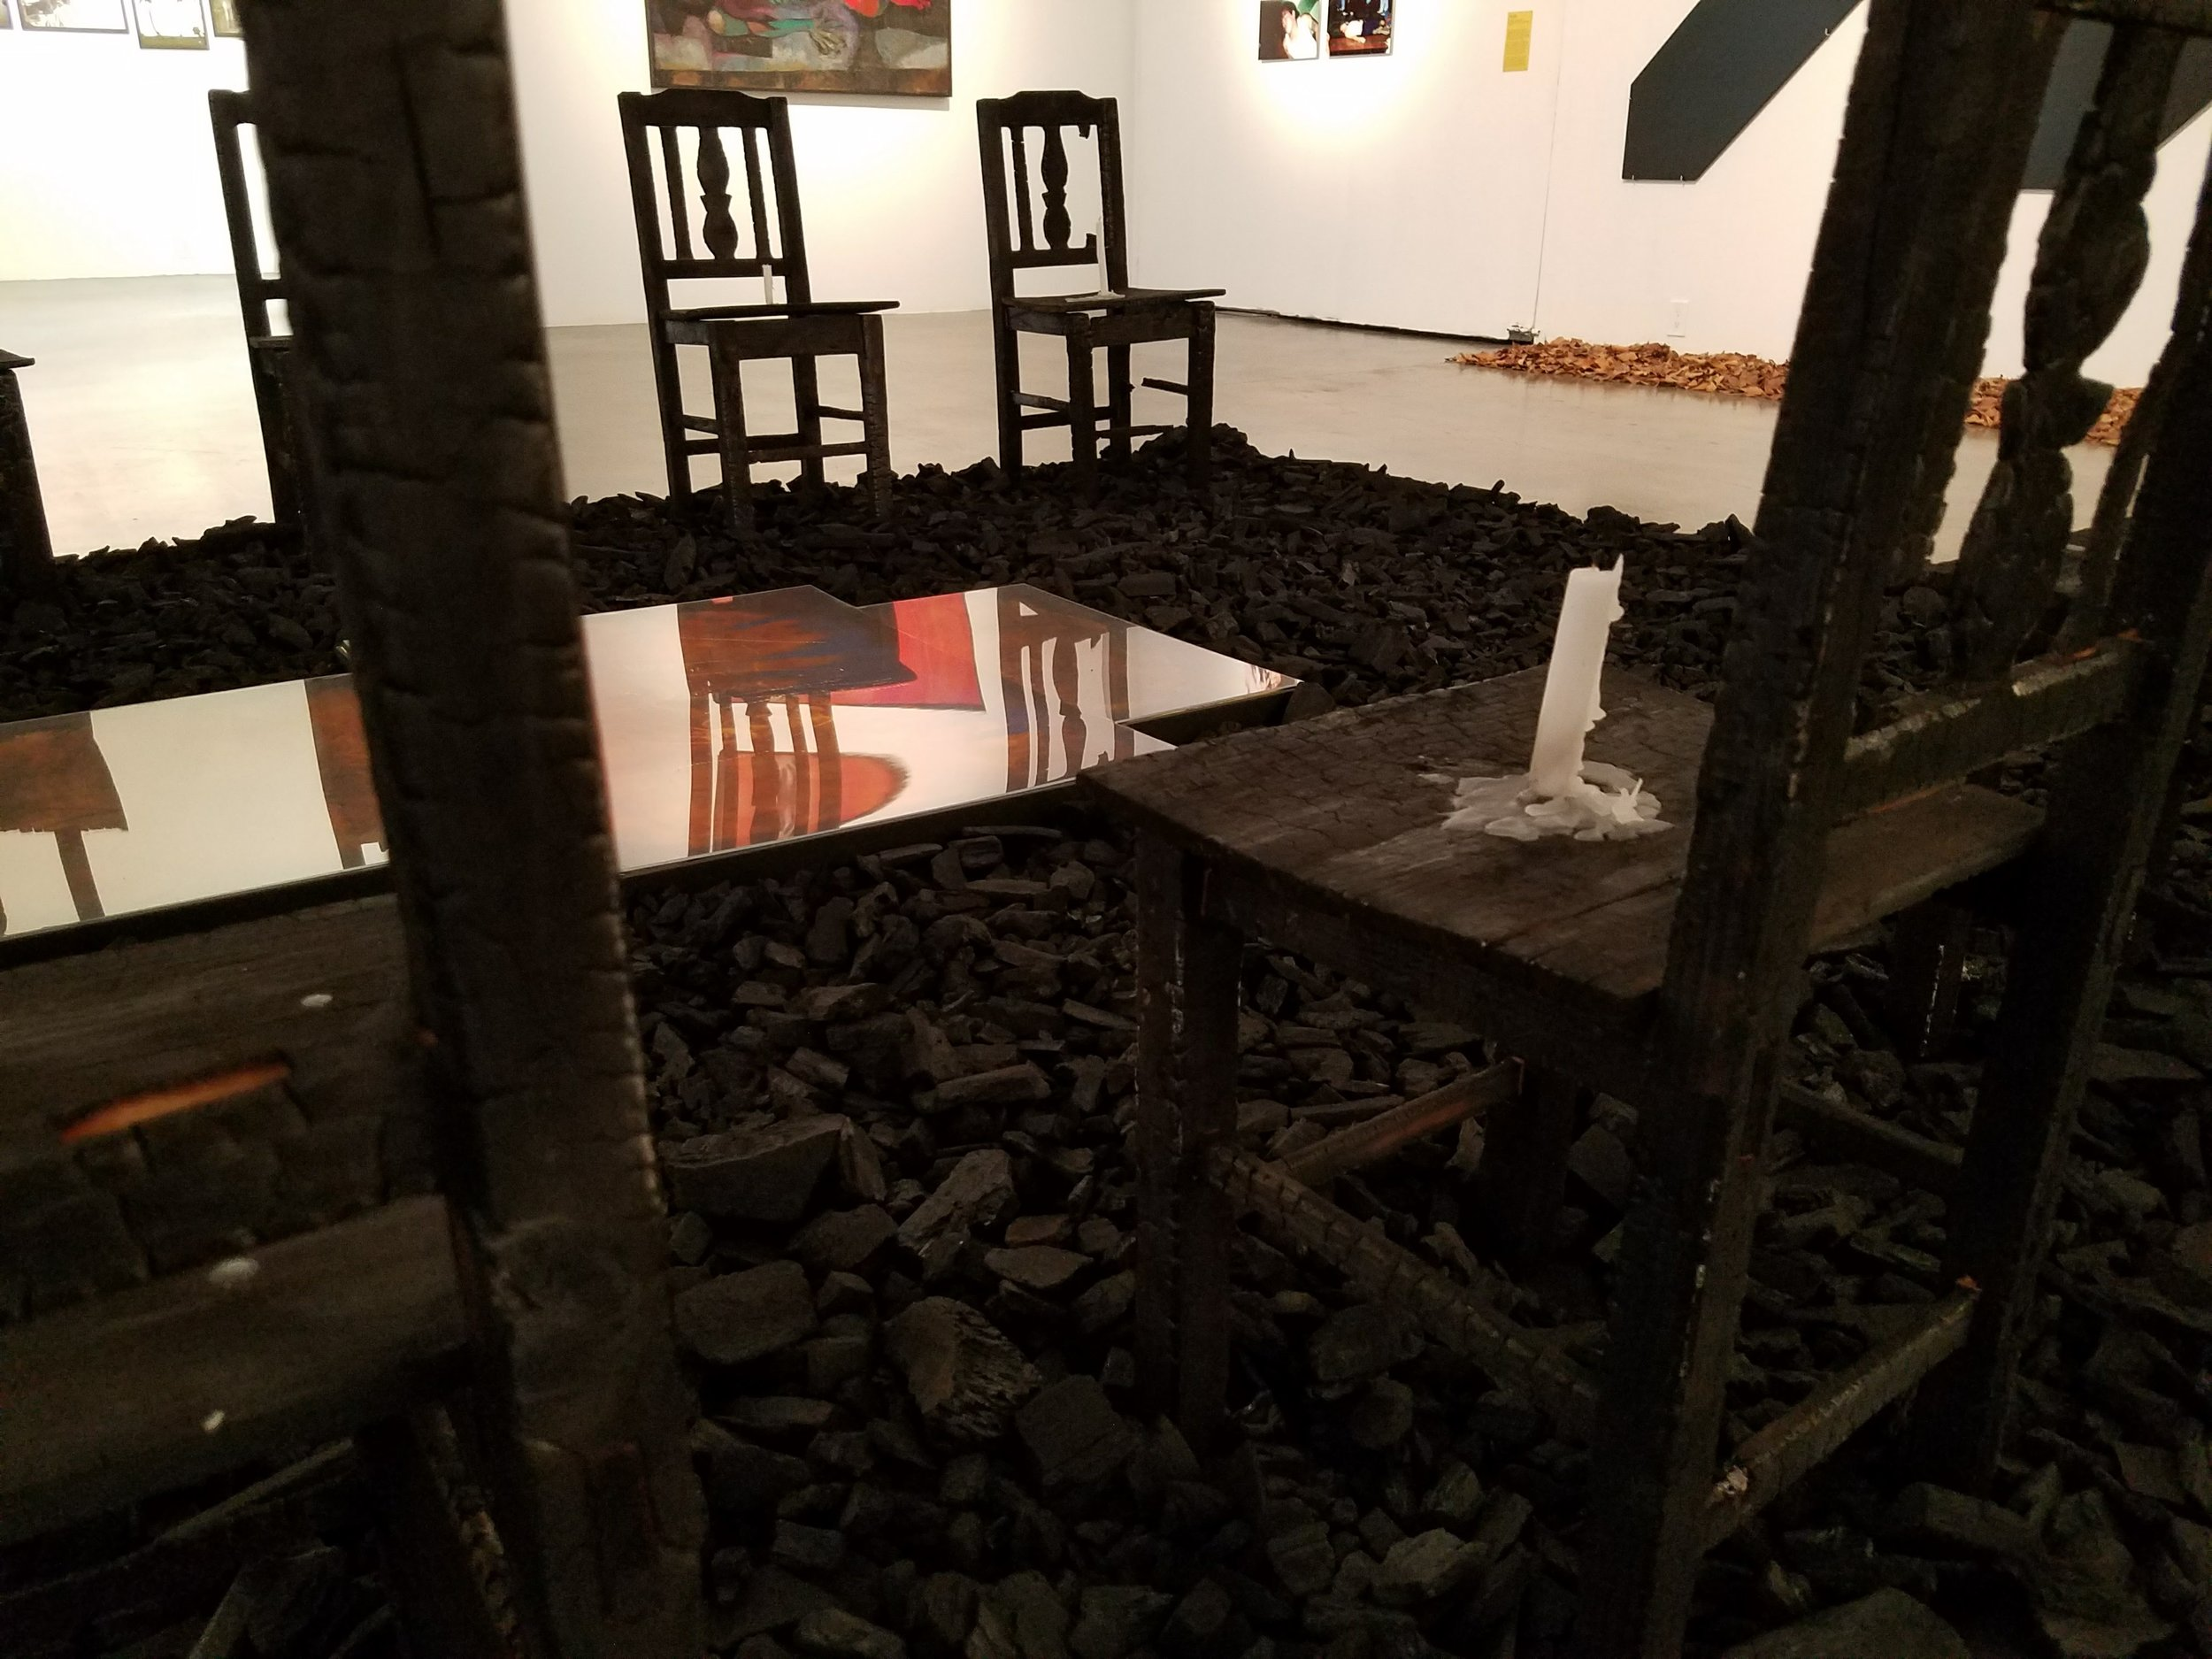 Detail from  Besieged History  (1991), on view at the Museum of Contemporary Art, Santa Barbara in  Guatemala from 33,000 km , curated by Miki Garcia and Emiliano Valdés.